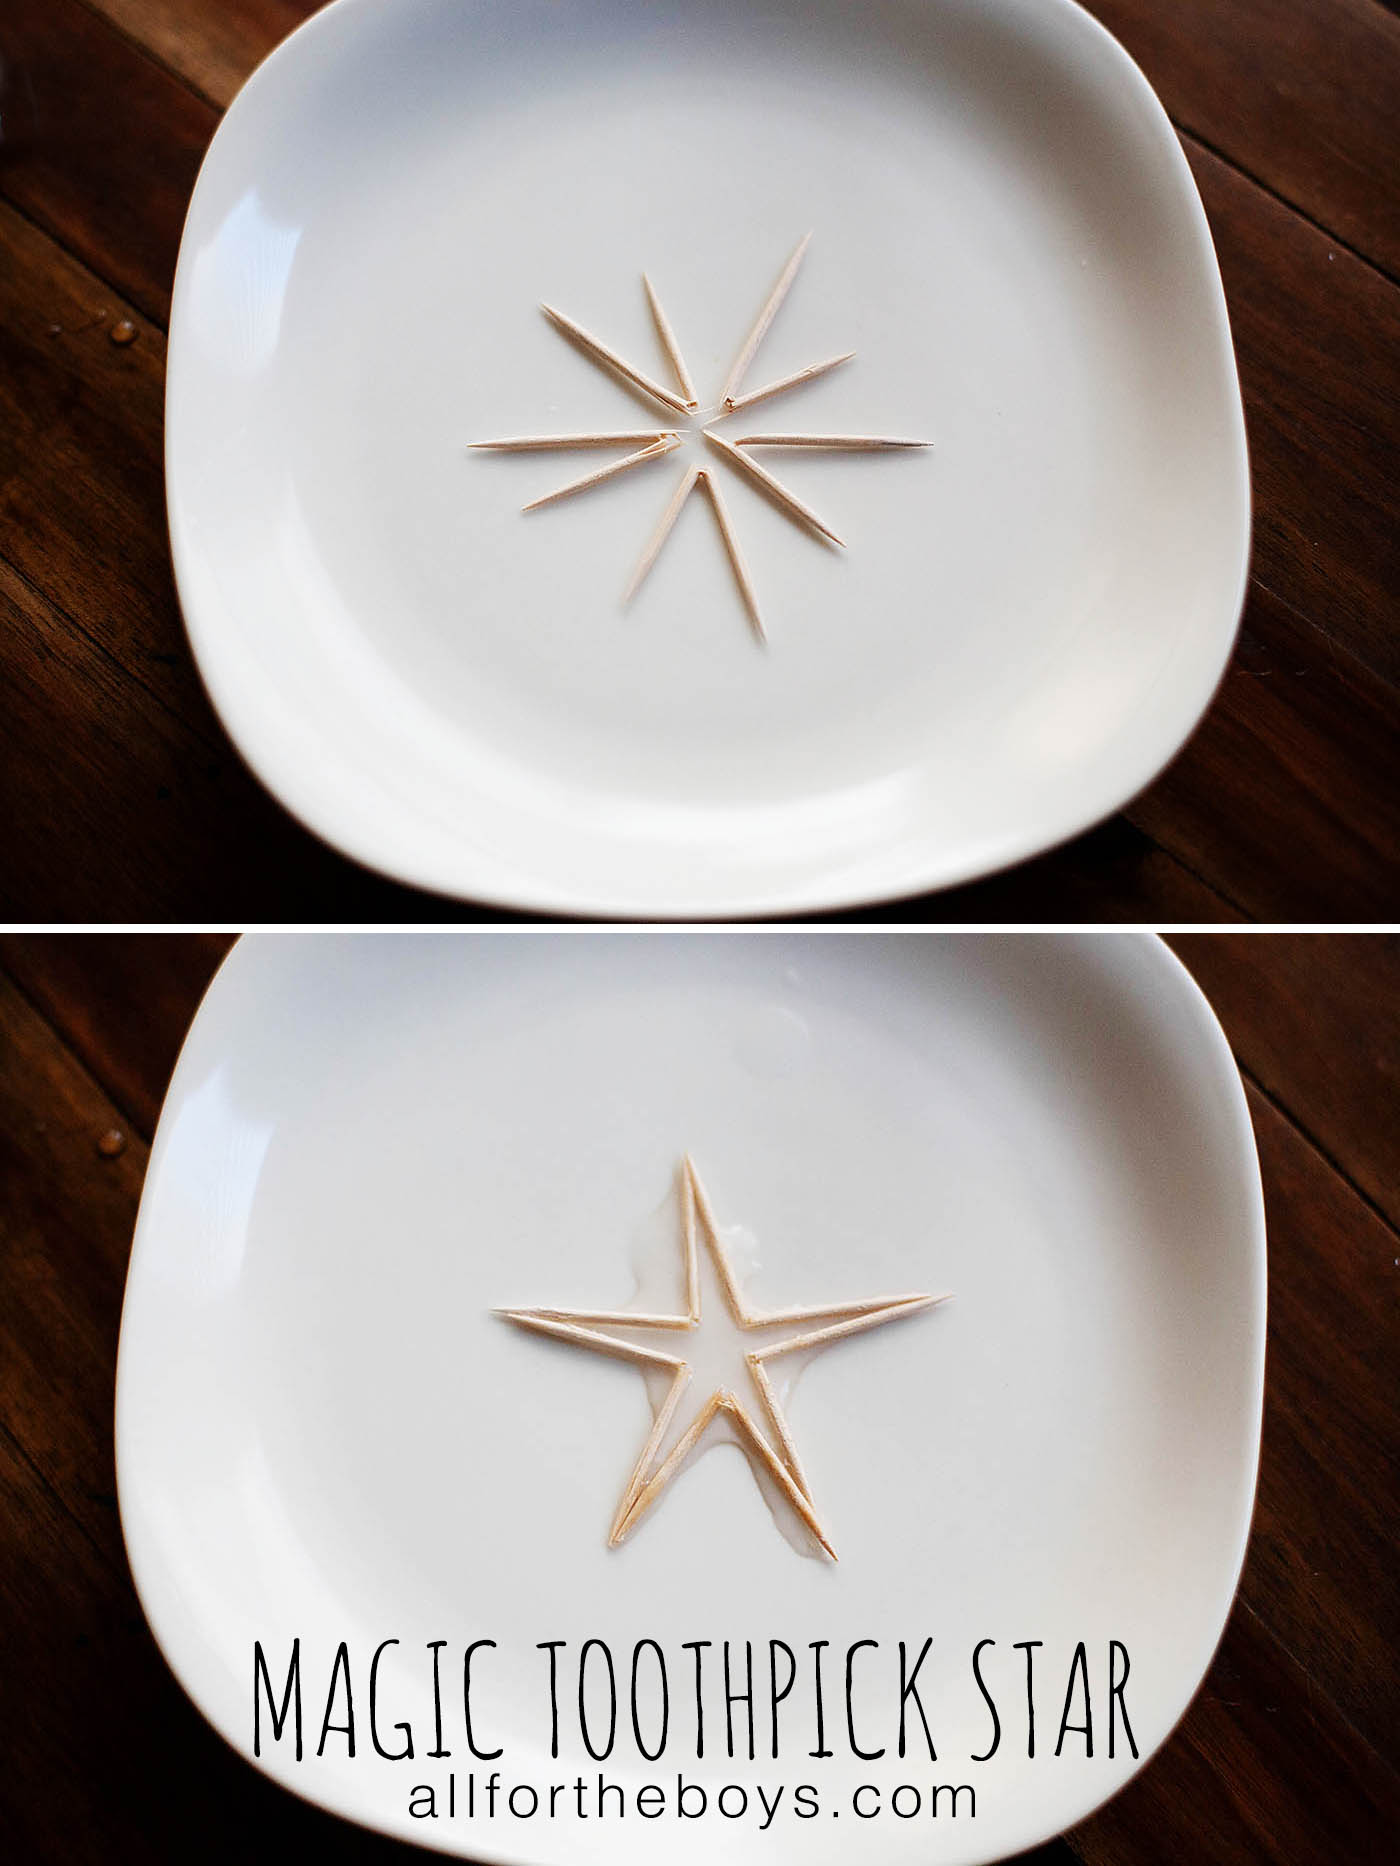 Magic toothpick star trick